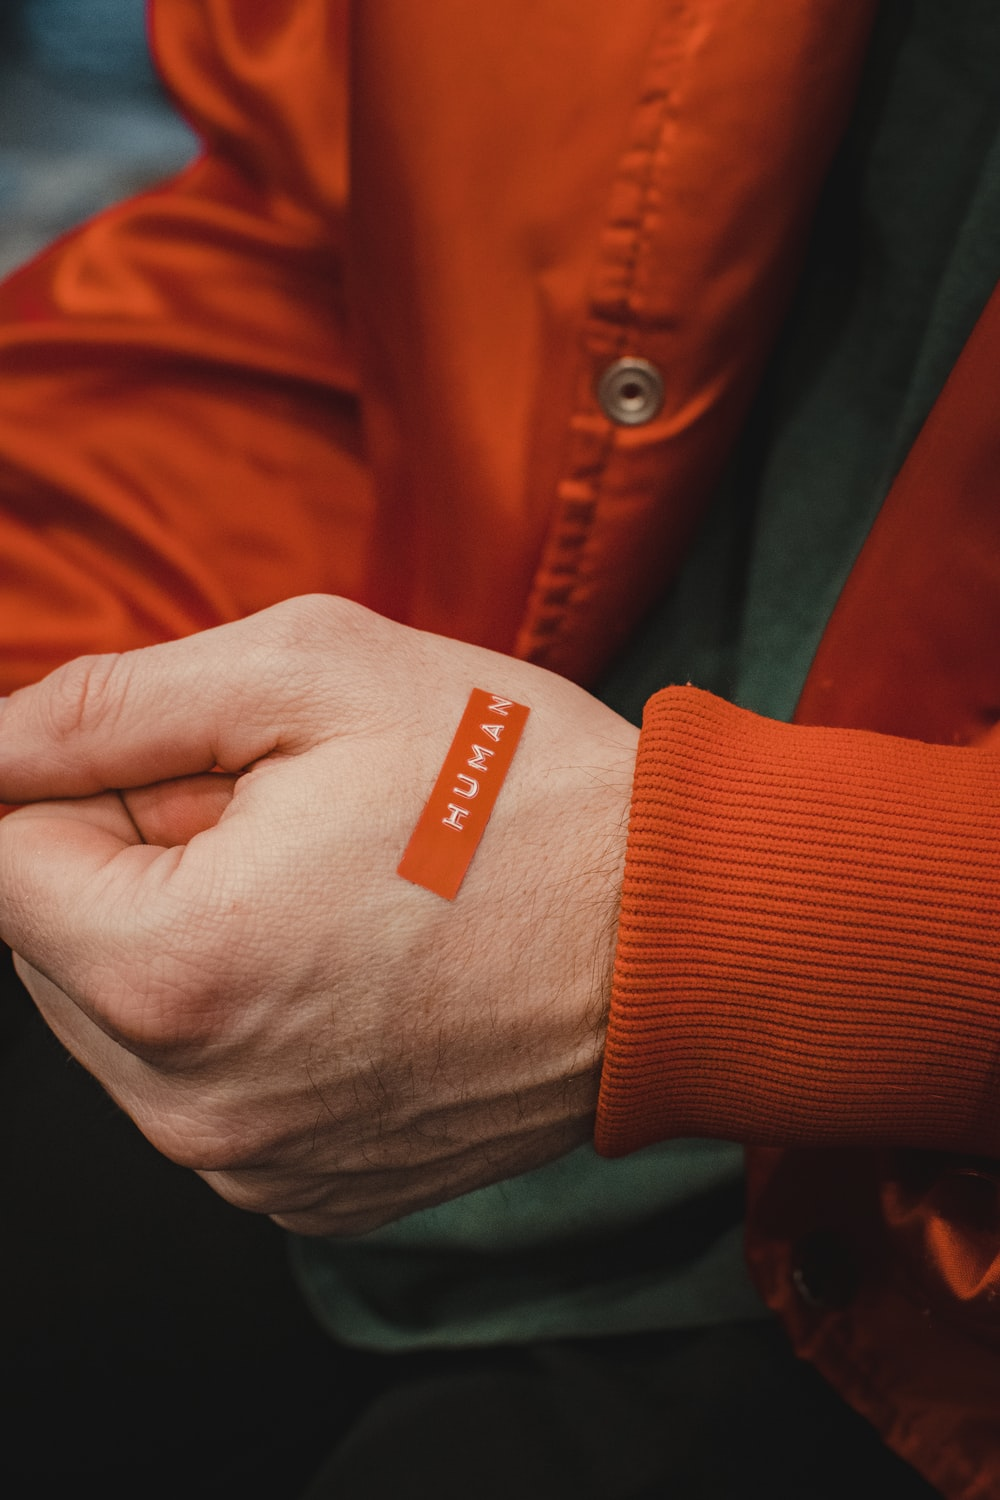 orange and white textile on persons hand